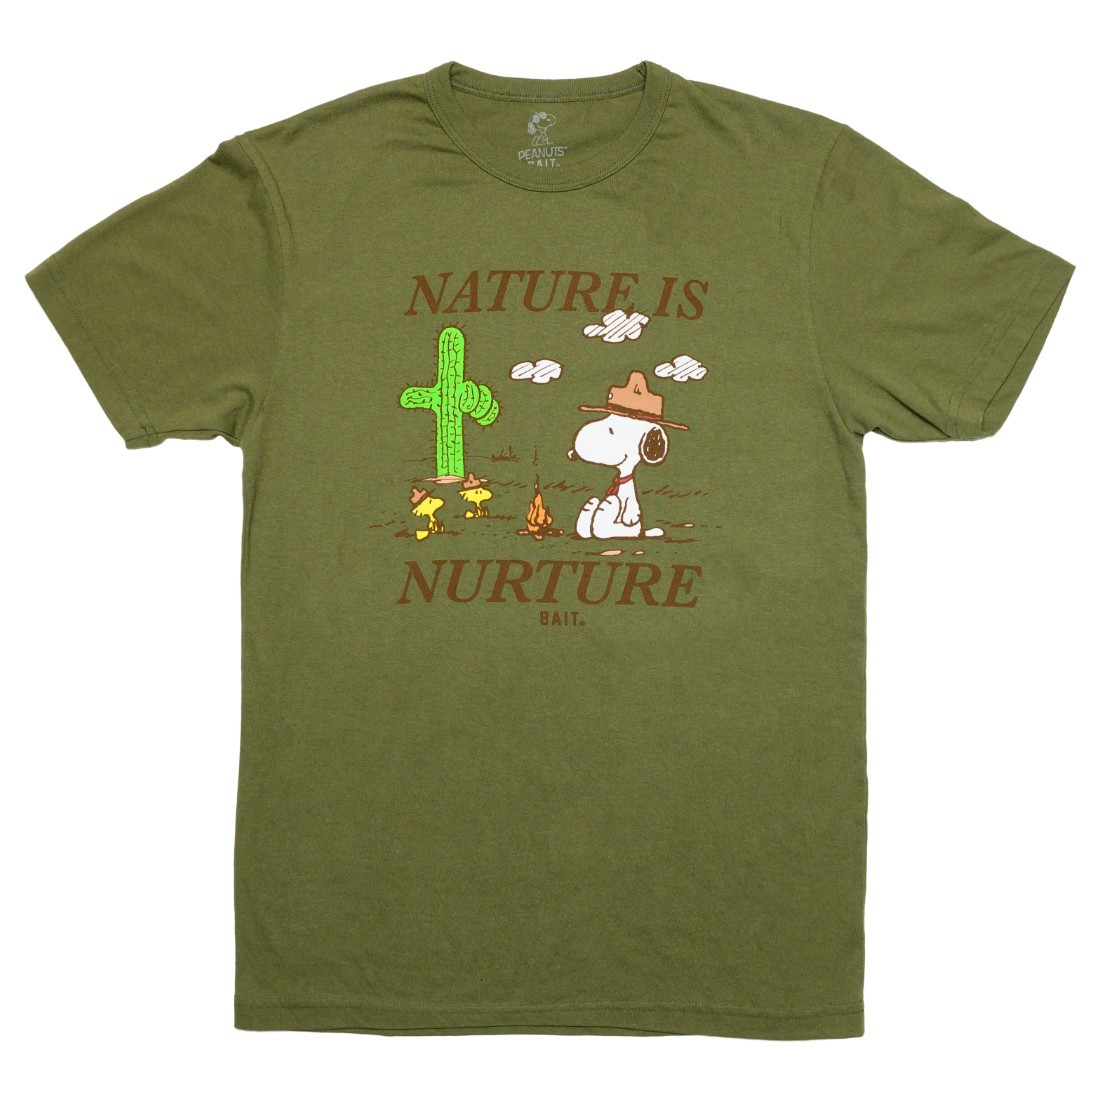 BAIT x Snoopy x Upcycle Men Nature Is Nurture Tee (green / moss)